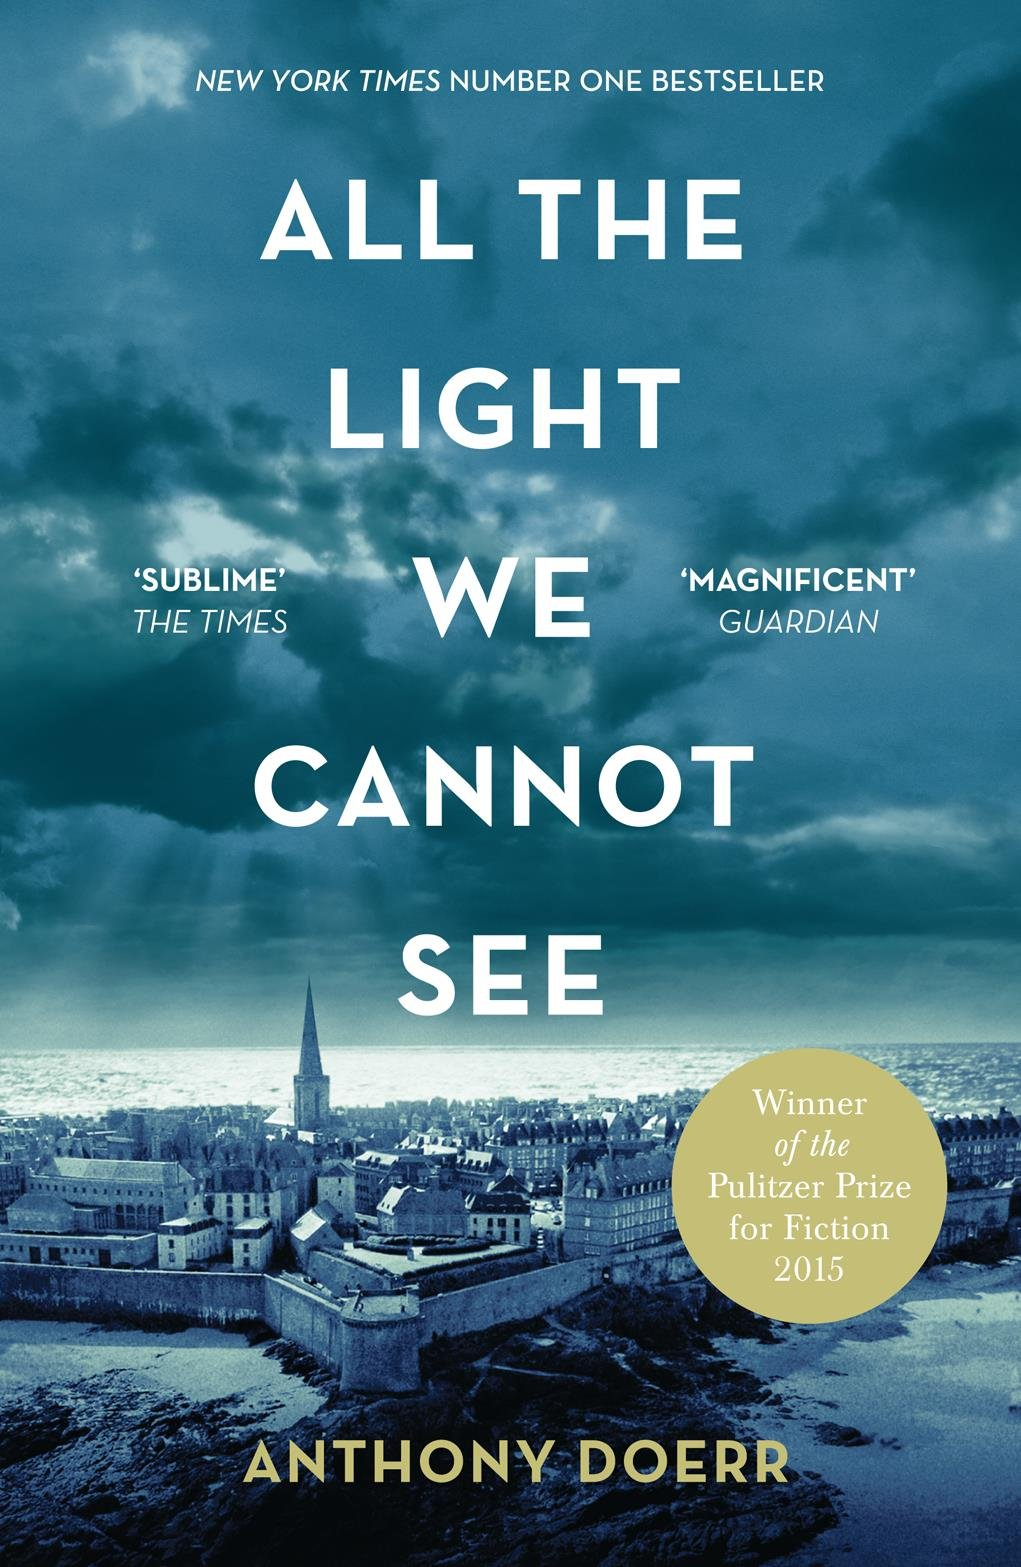 Wonderful Buy All The Light We Cannot See Book Online At Low Prices In India | All  The Light We Cannot See Reviews U0026 Ratings   Amazon.in Home Design Ideas